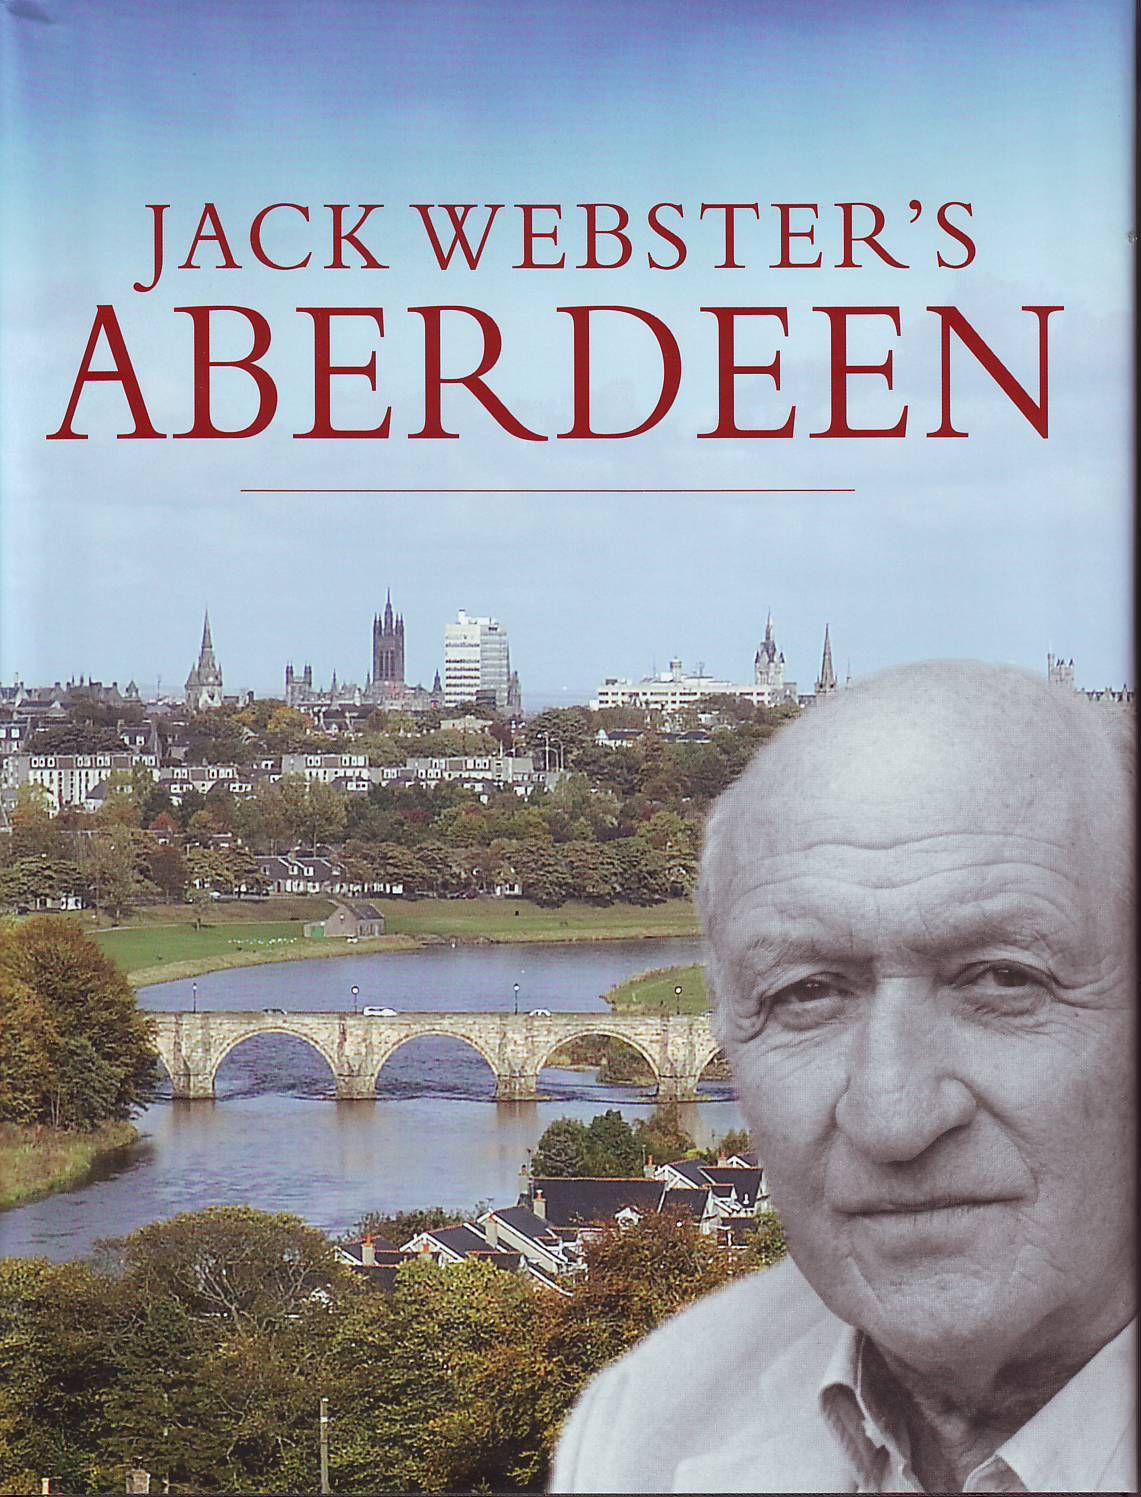 Jack Webster's Aberdeen